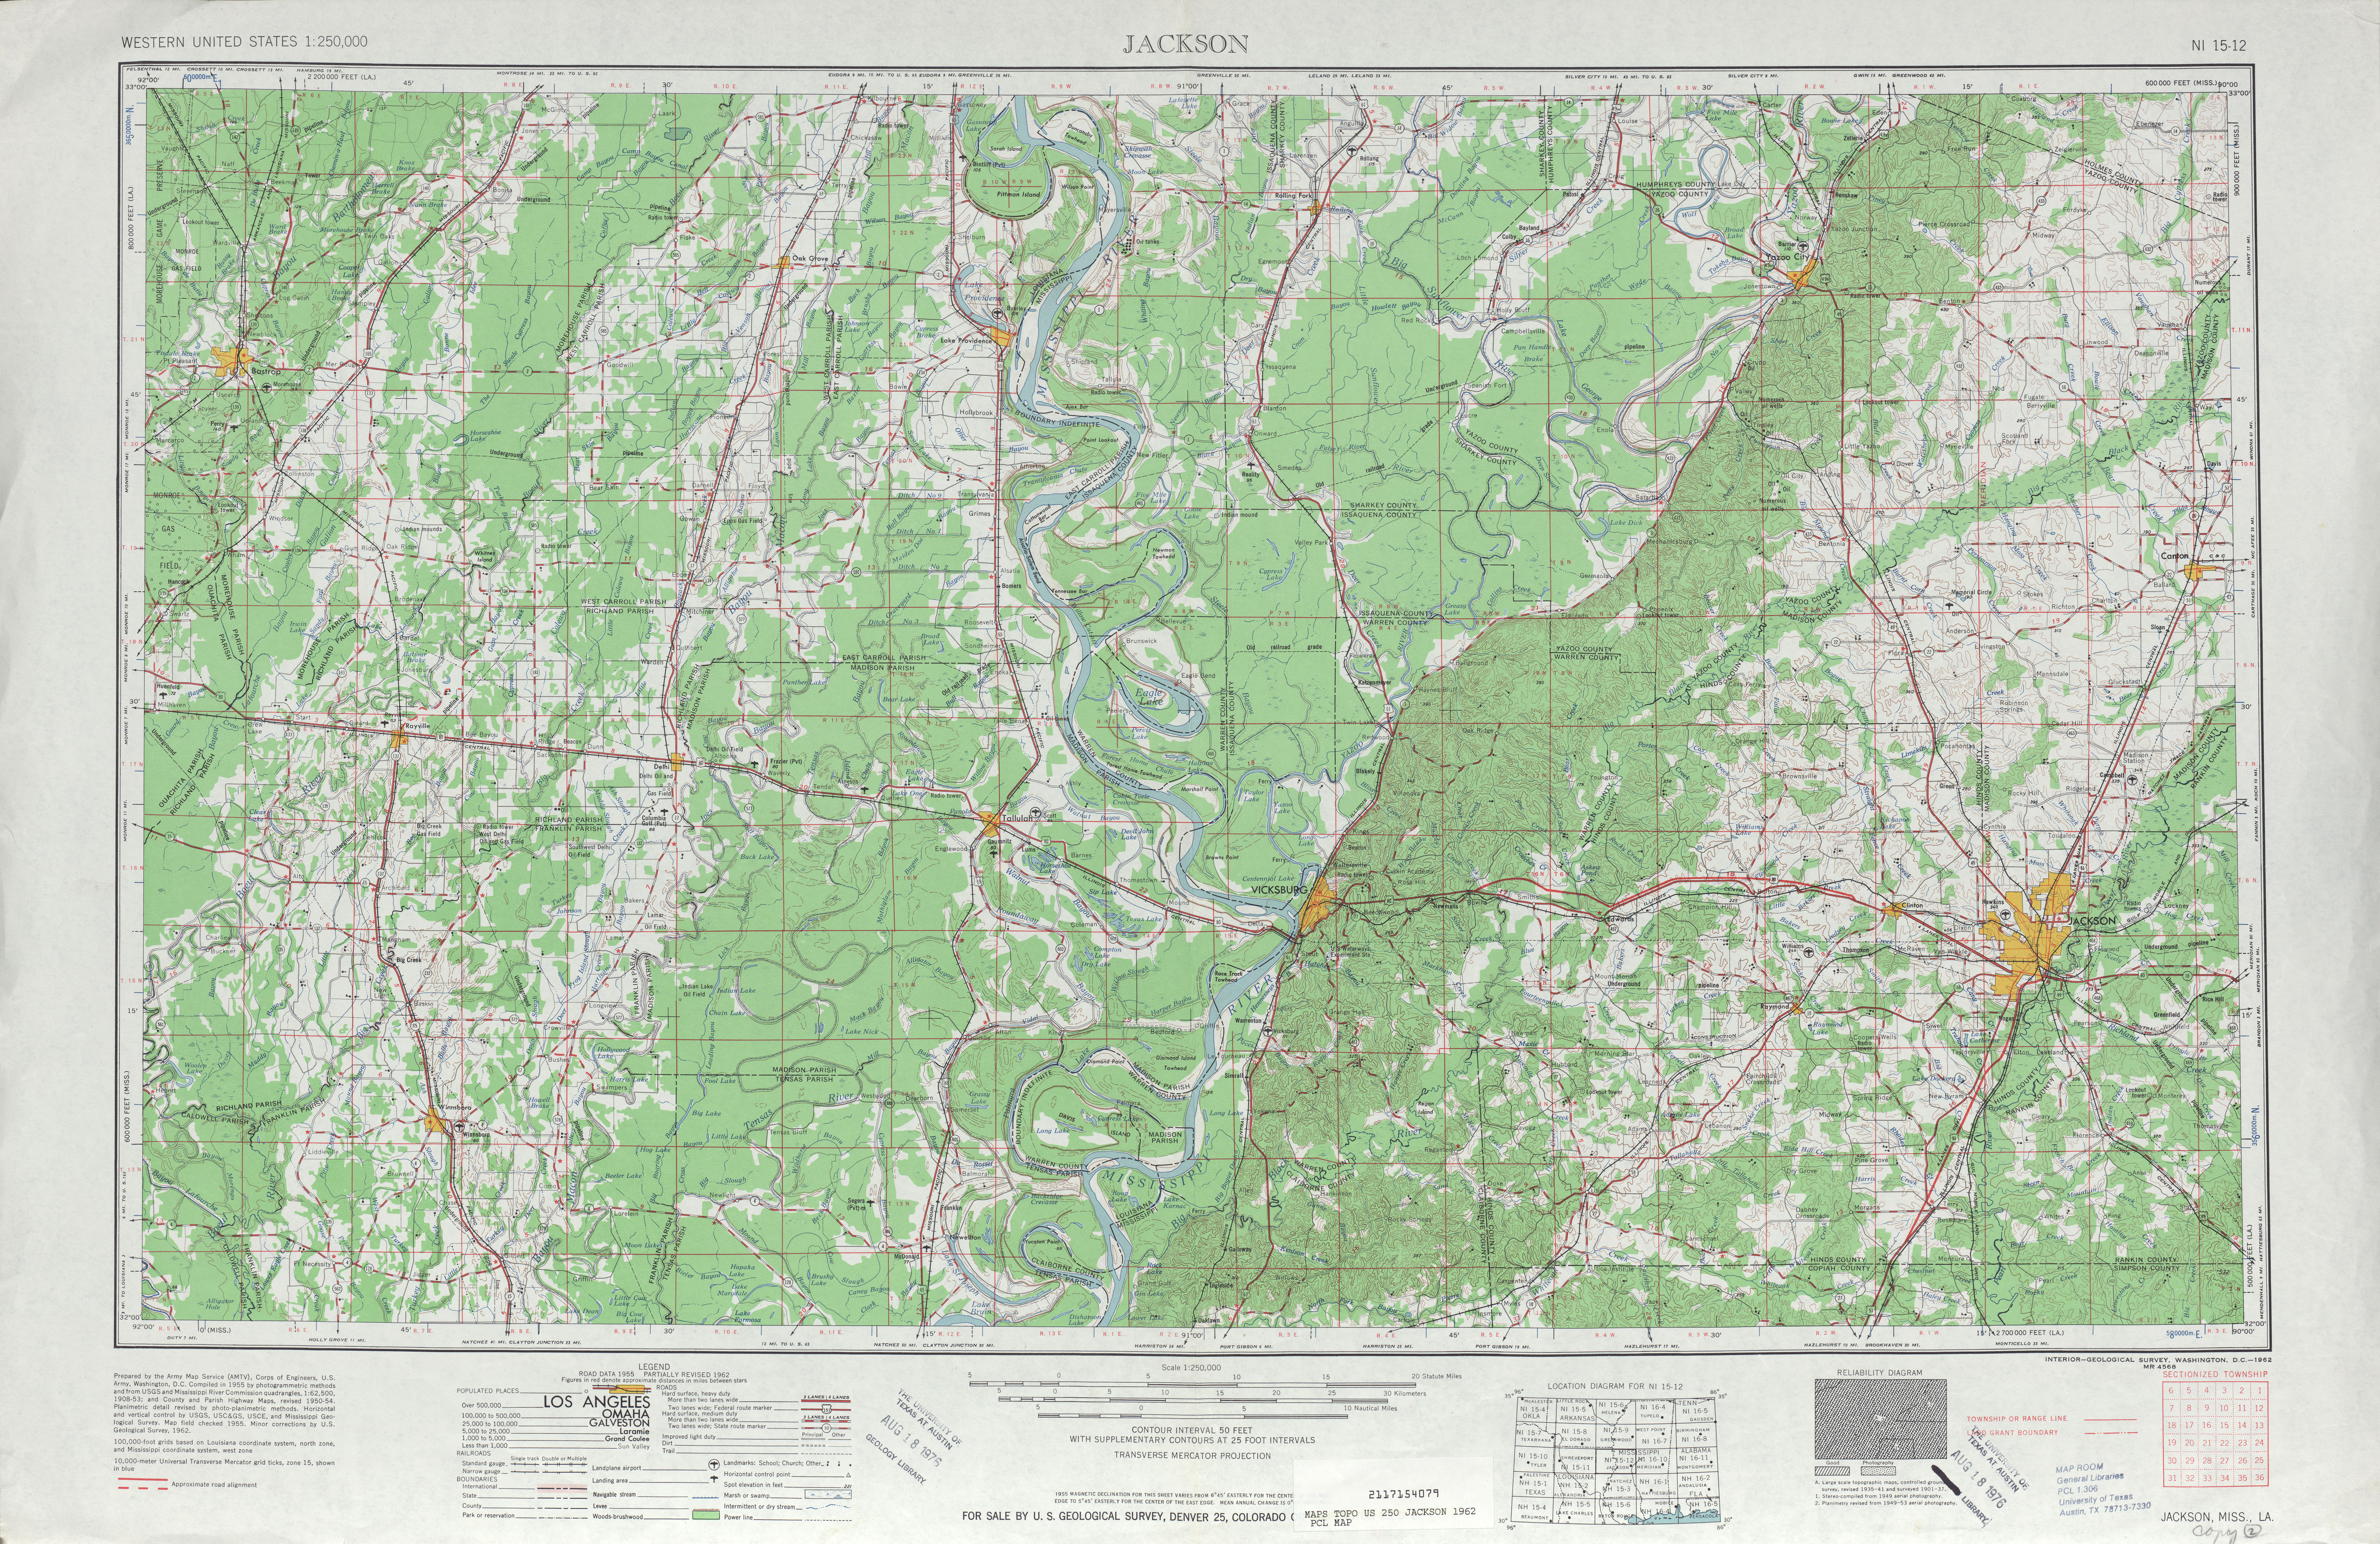 Topographic Map Mississippi.Mississippi Topographic Maps Perry Castaneda Map Collection Ut